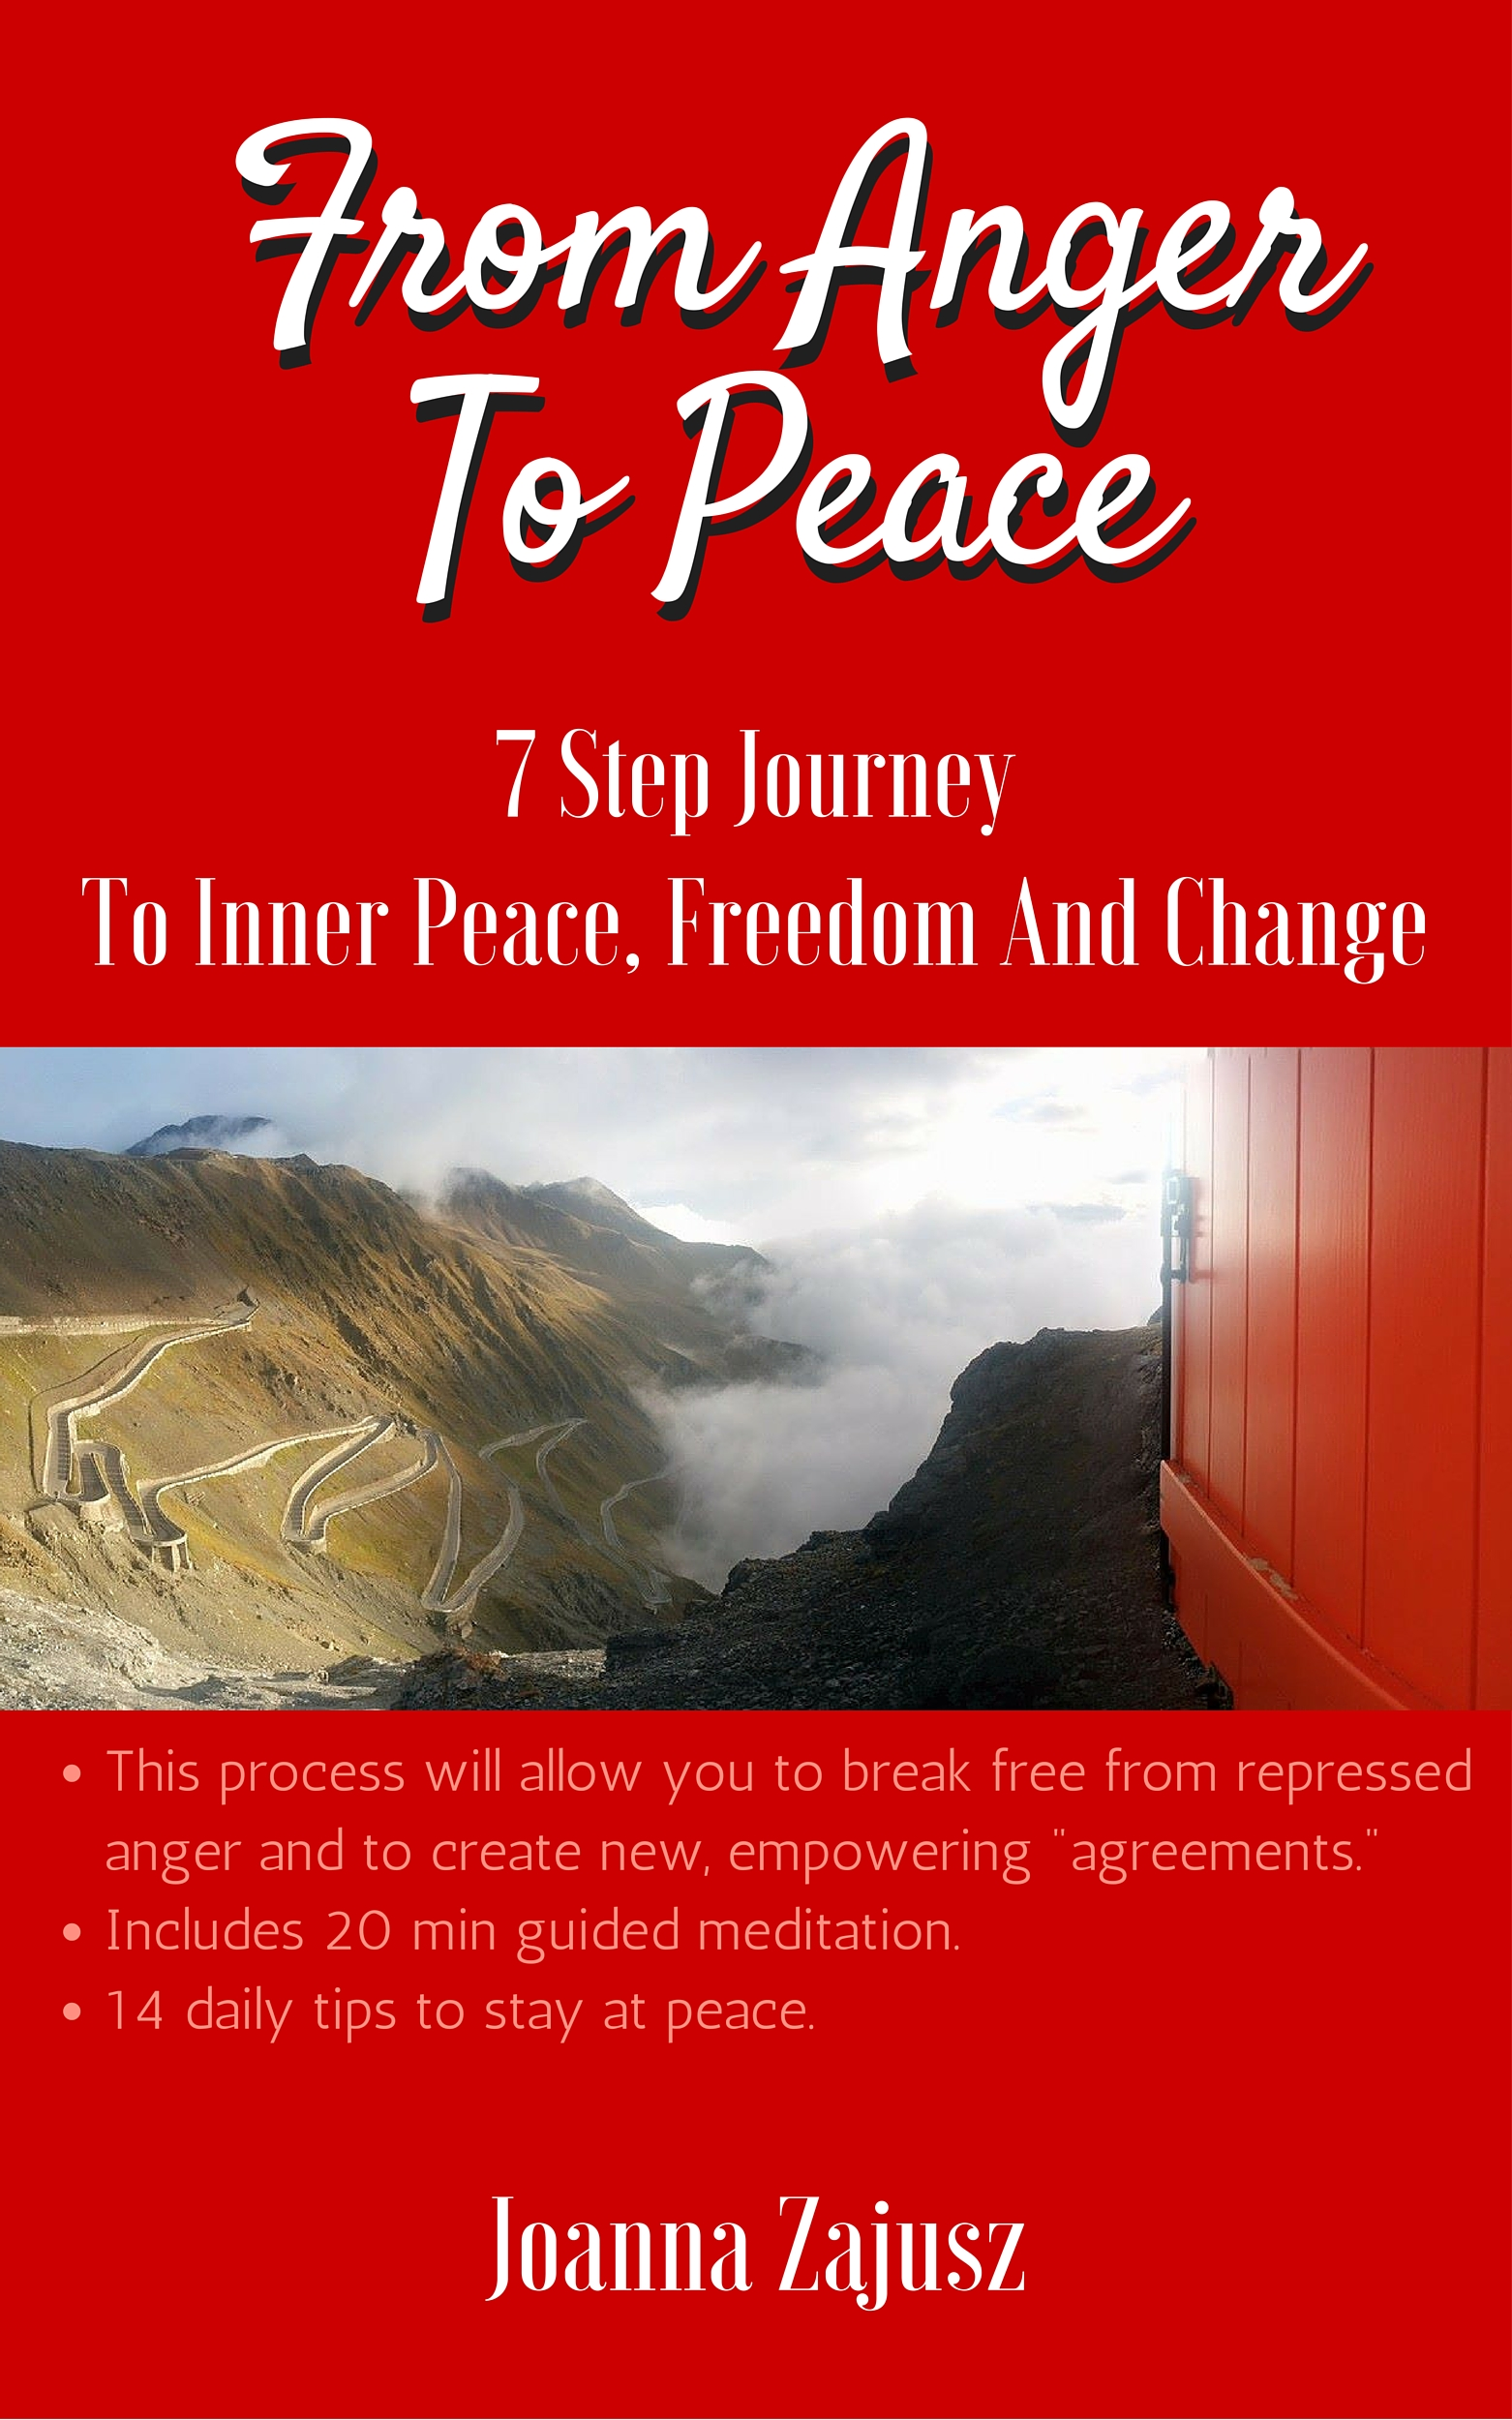 7 Step Journey Towards Inner Peace, Freedom And Change.